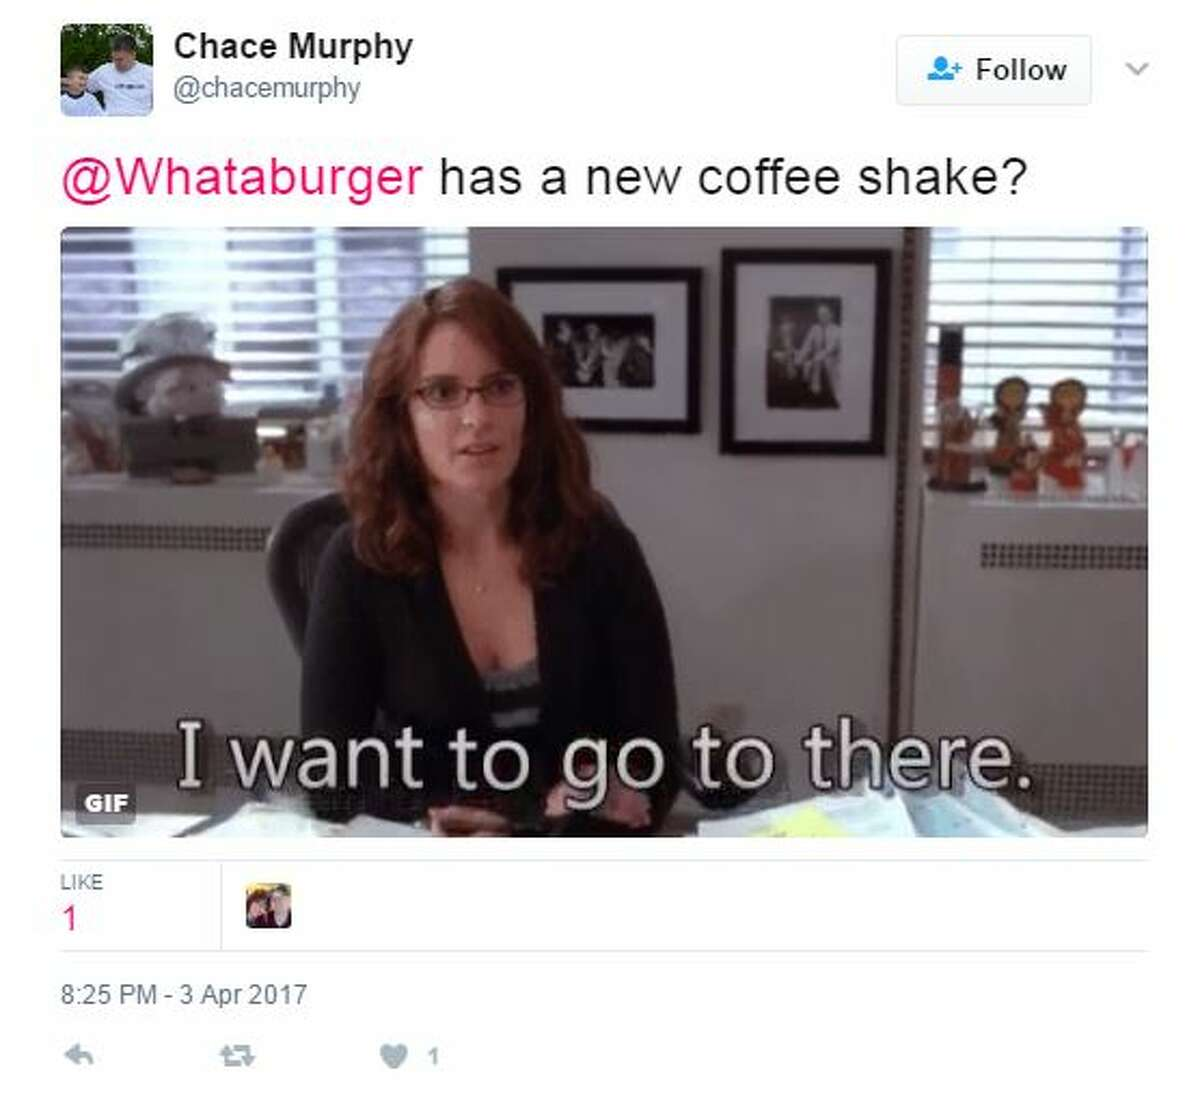 Whataburger debuted a new coffee shake on April 3, and people could not be more excited.>>KEEP CLICKING TO SEE HOW THE INTERNET REACTED TO THE ANNOUNCEMENT.